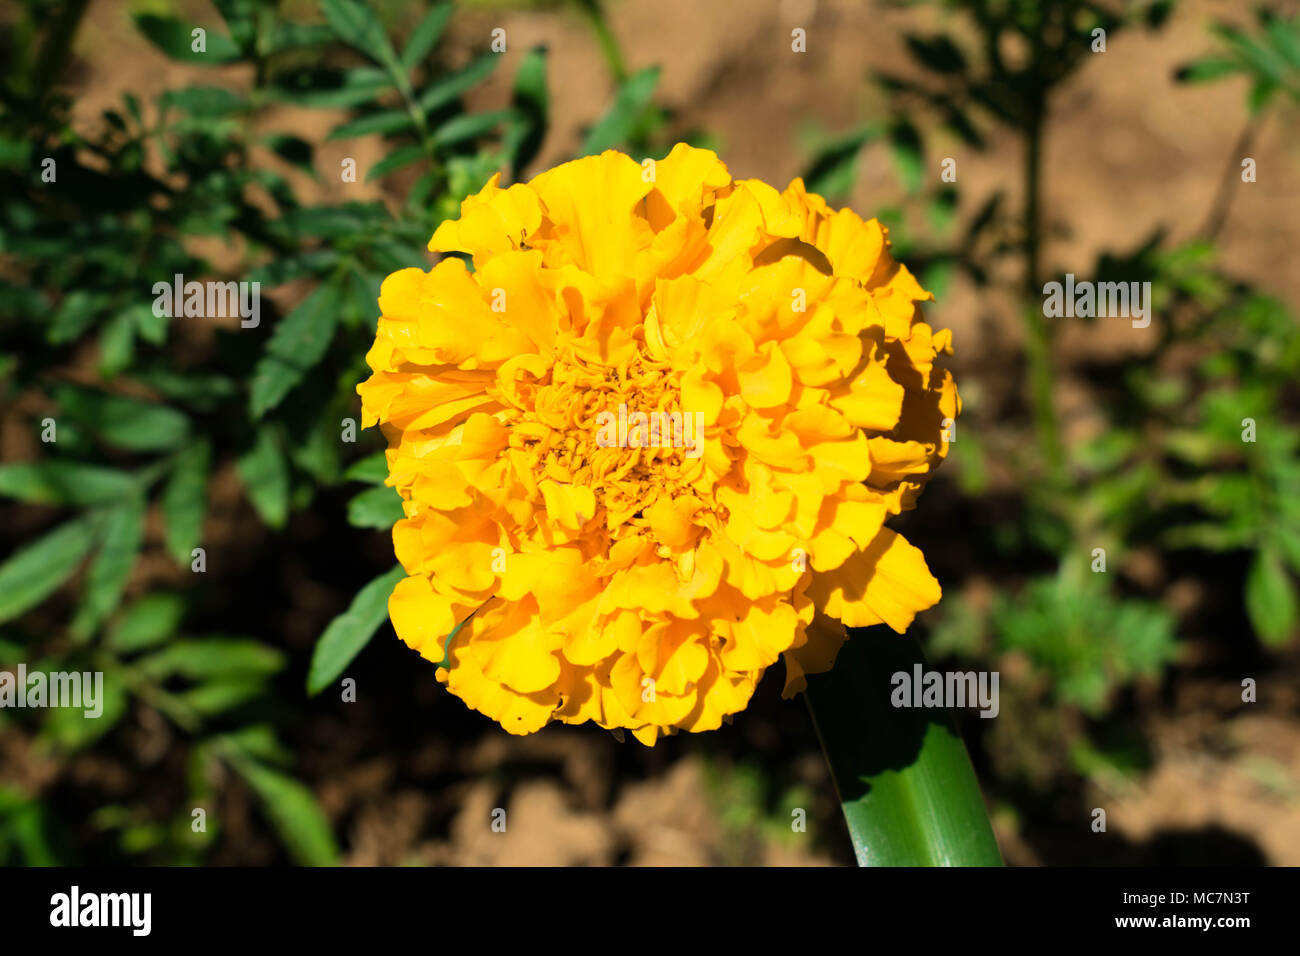 Yellow flower - Stock Image